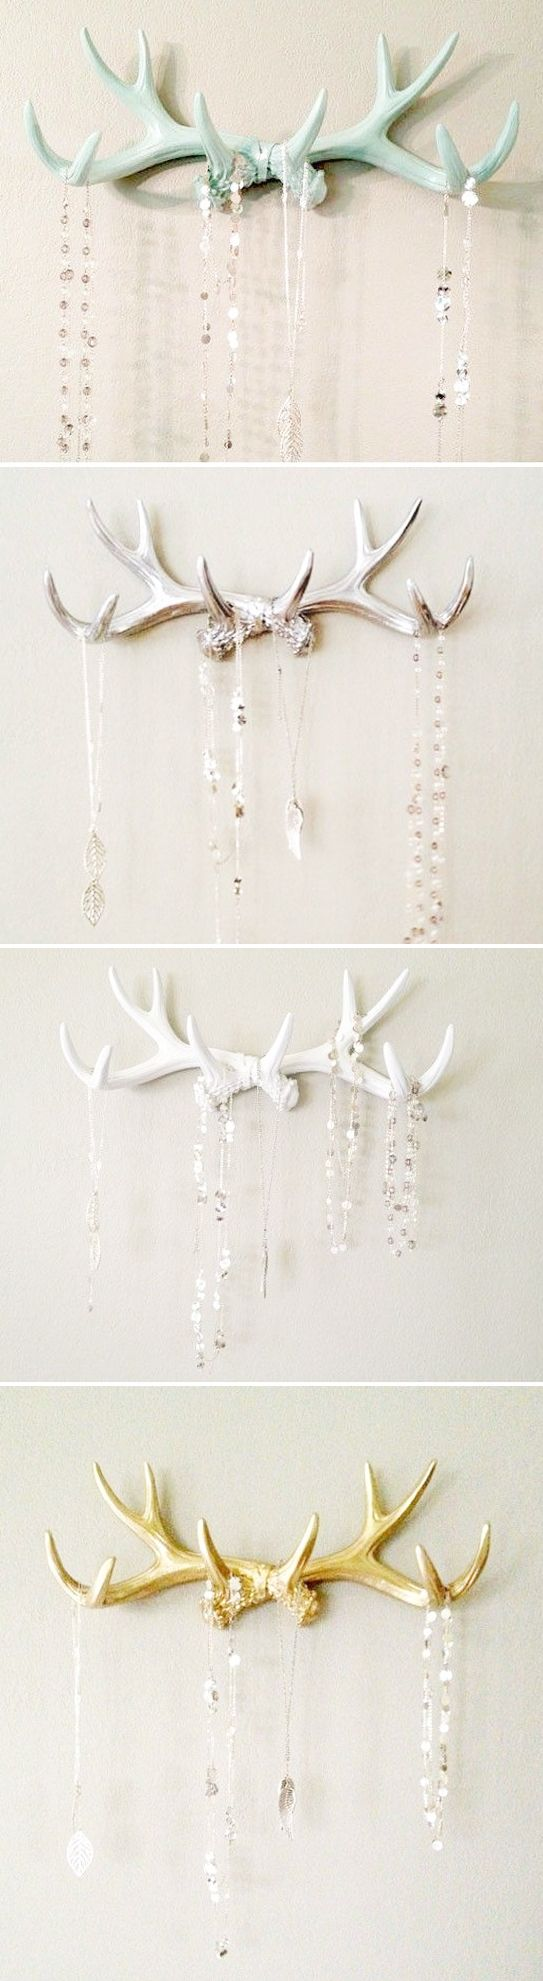 Cute Antler Decor - the colors are so great.